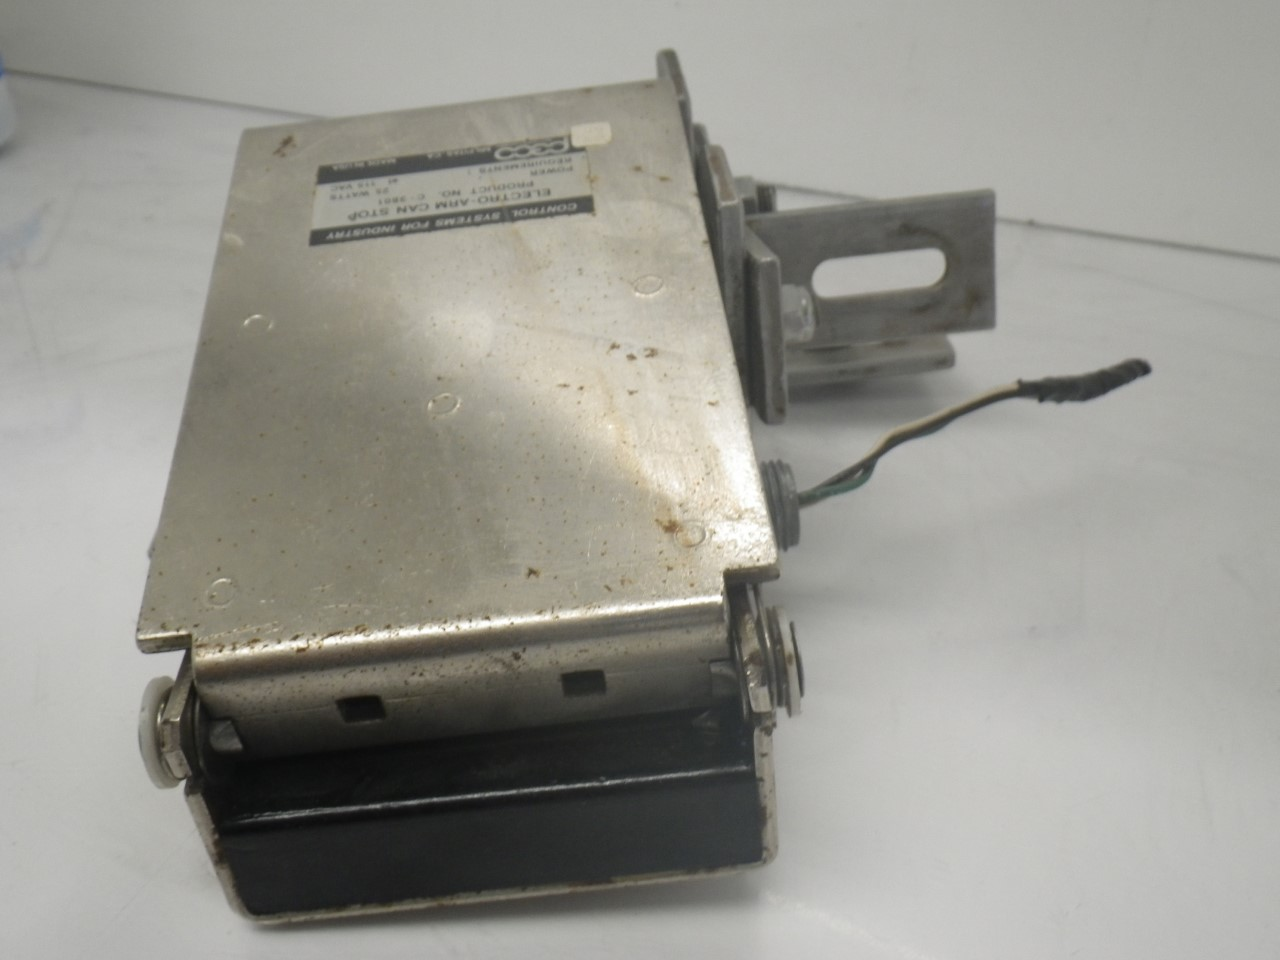 IMGP6937C-3801 C-3800A 3012Peco Electro-arm Controls forPackage Inspection(Used Tested) (13)